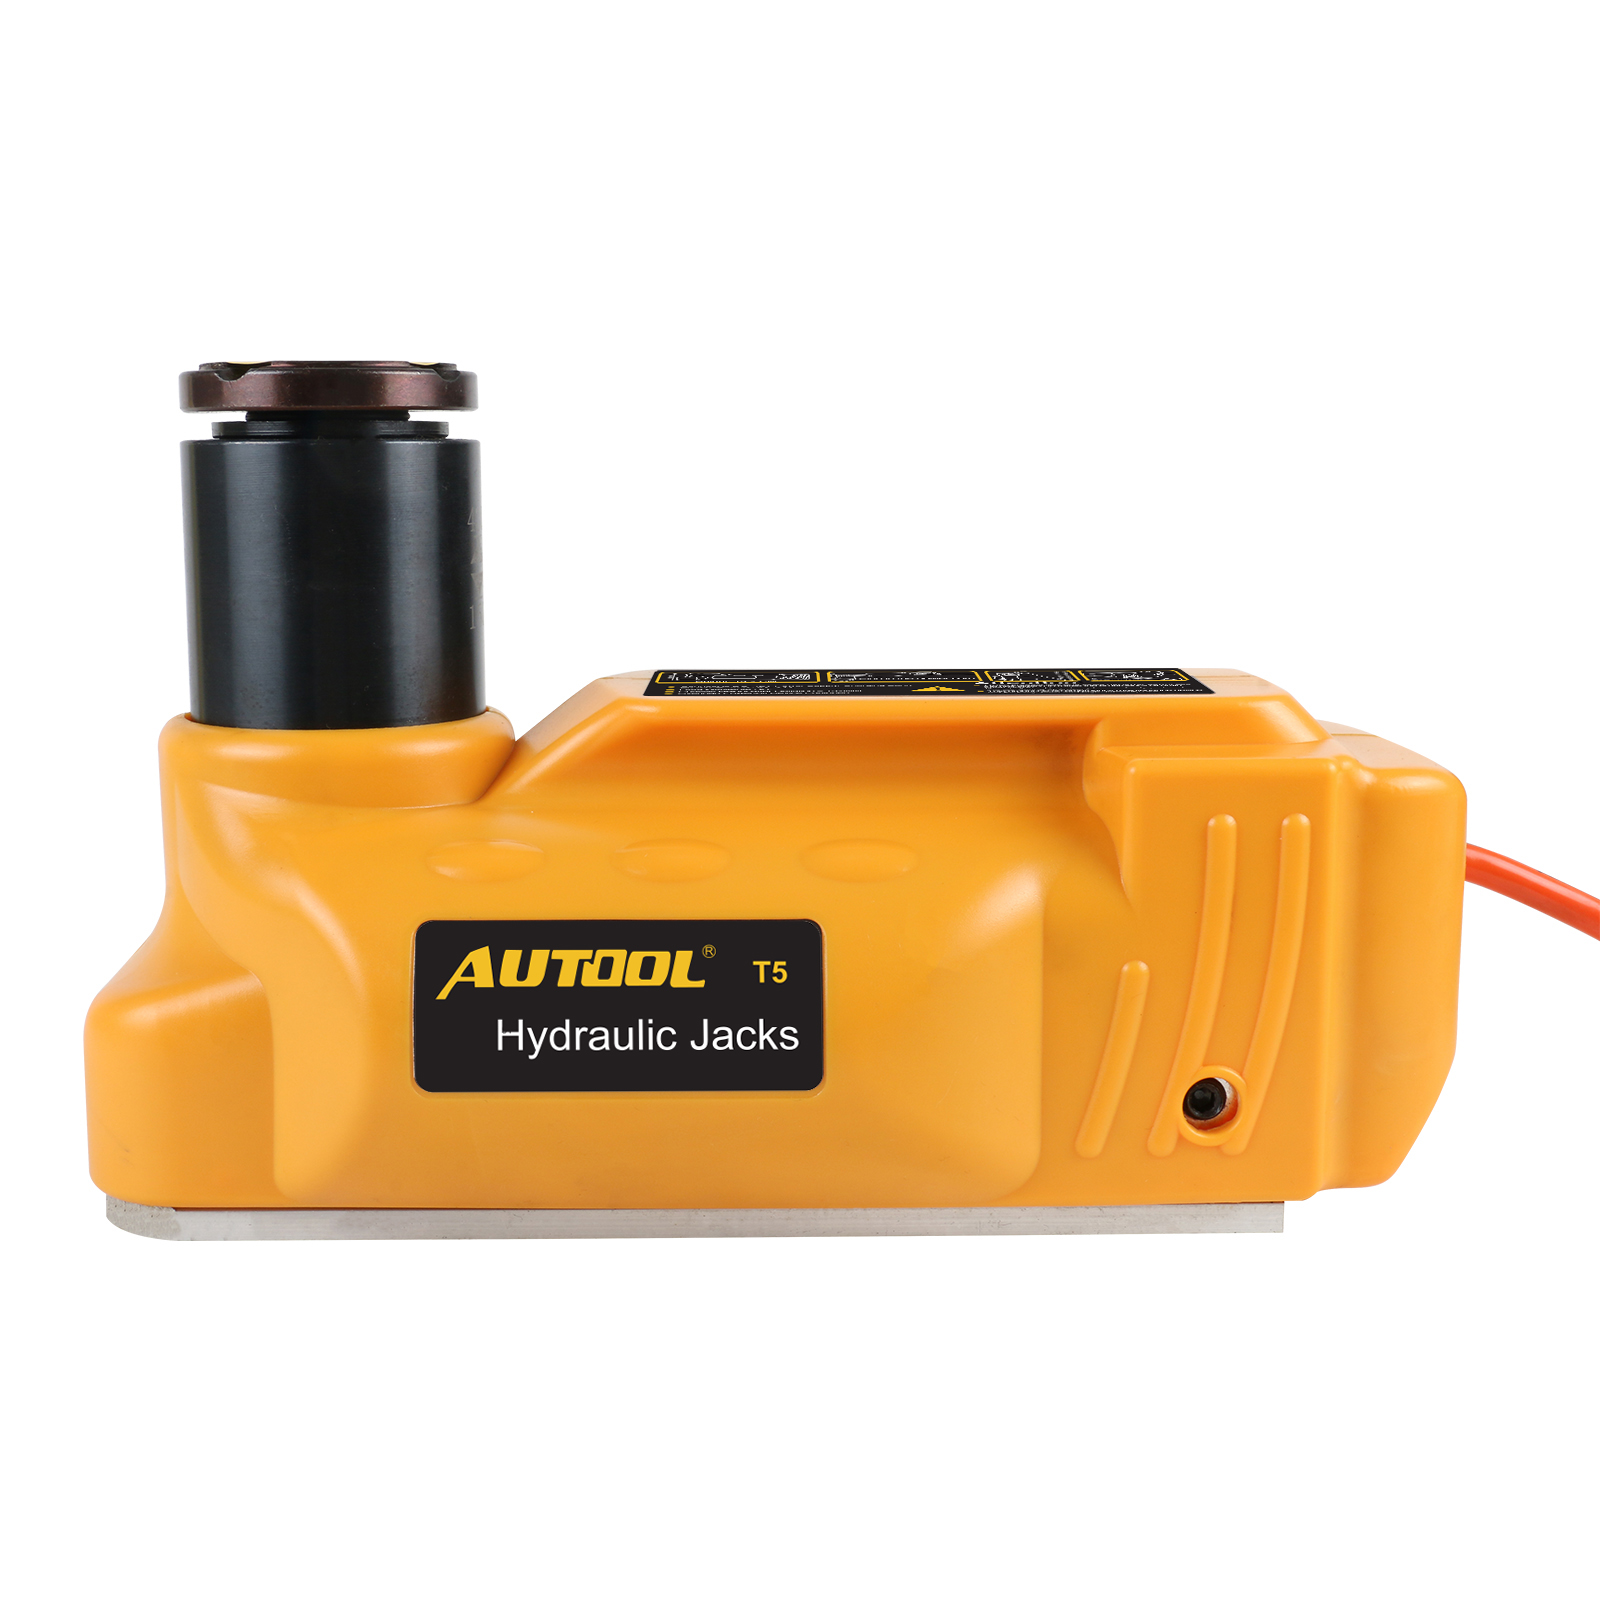 AUTOOL 5T Portable Hydraulic Electric Floor Jacks 12V Car ...